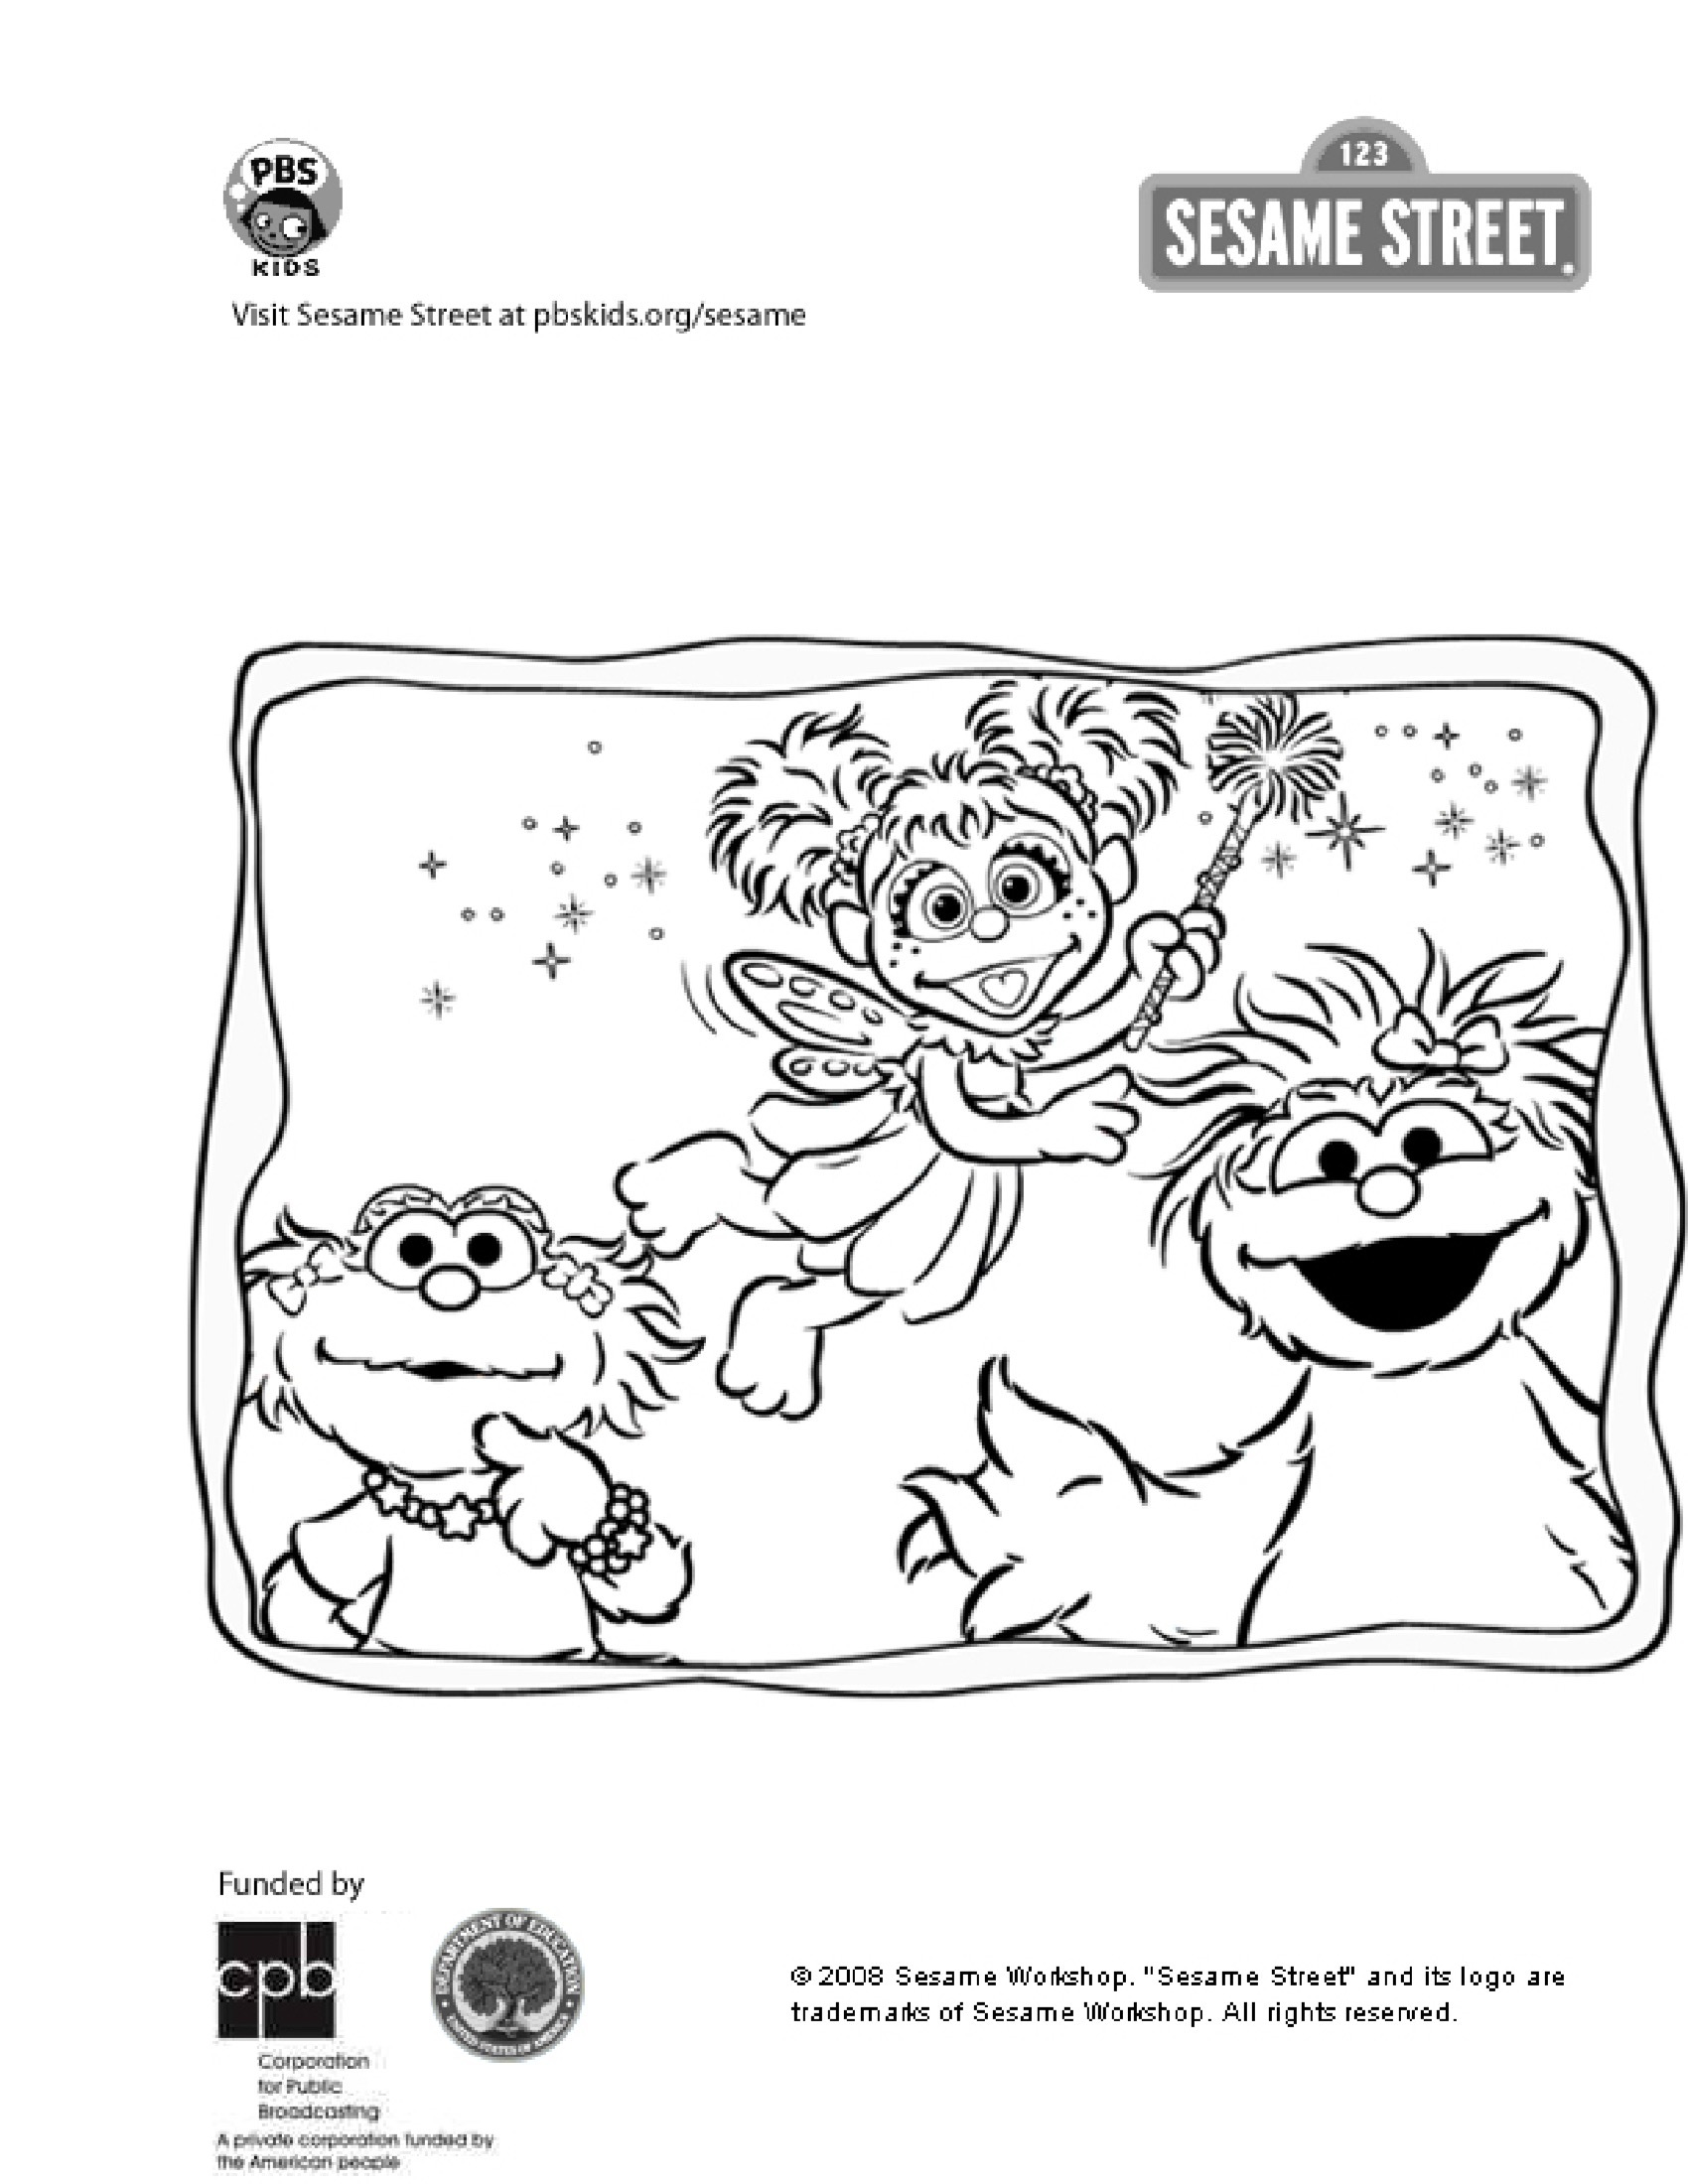 Sesame Street Characters coloring page | Free Printable Coloring Pages | 2200x1700